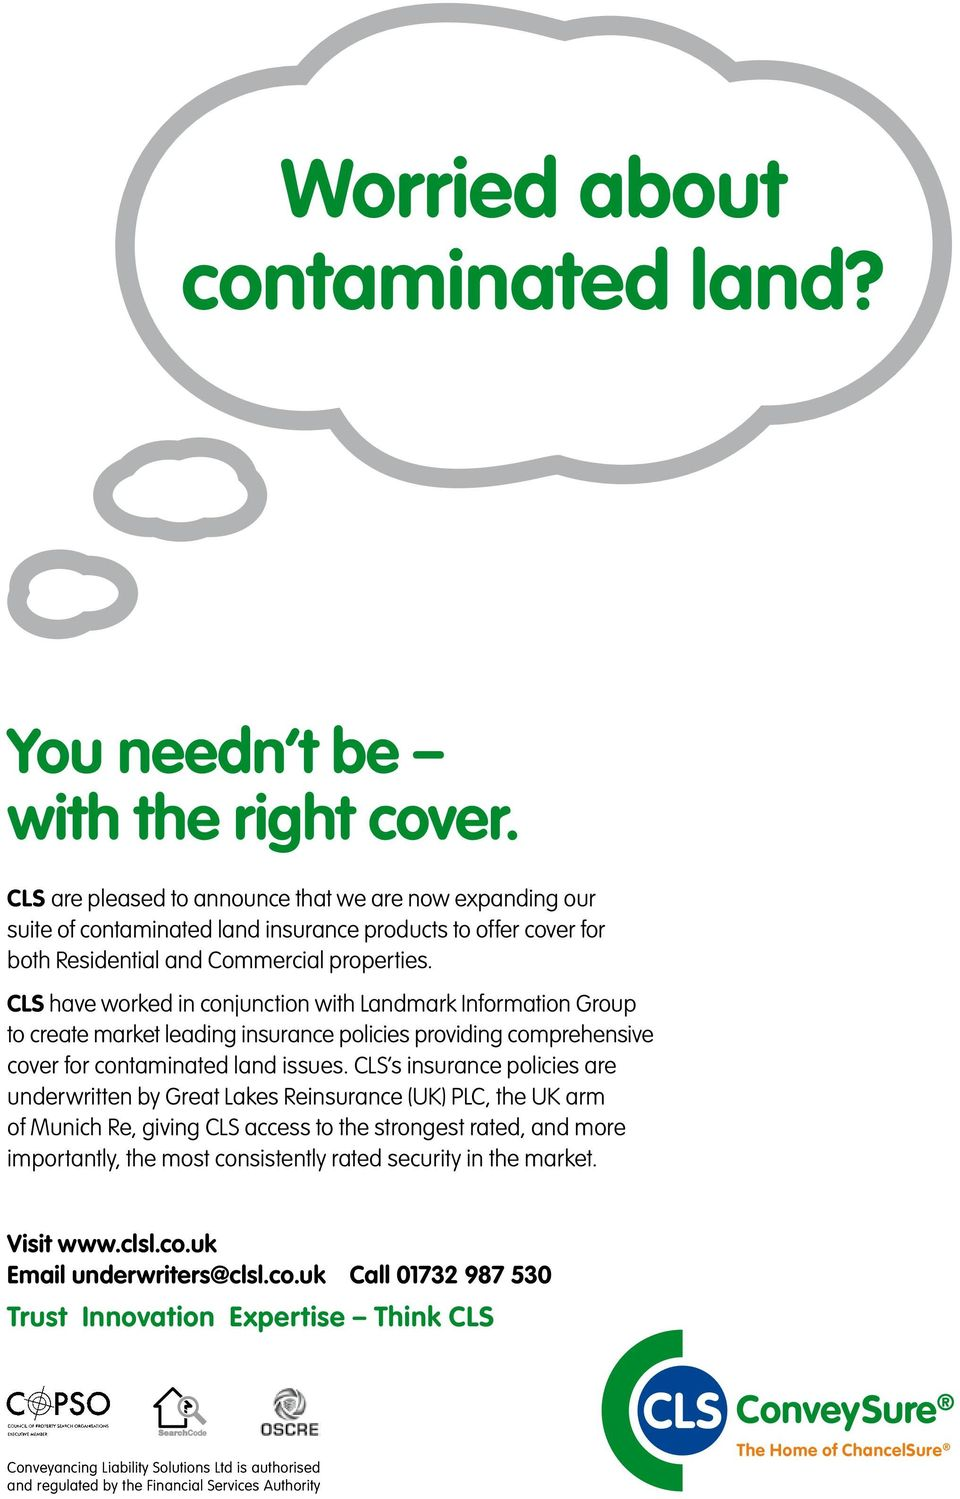 CLS have worked in conjunction with Landmark Information Group to create market leading insurance policies providing comprehensive cover for contaminated land issues.